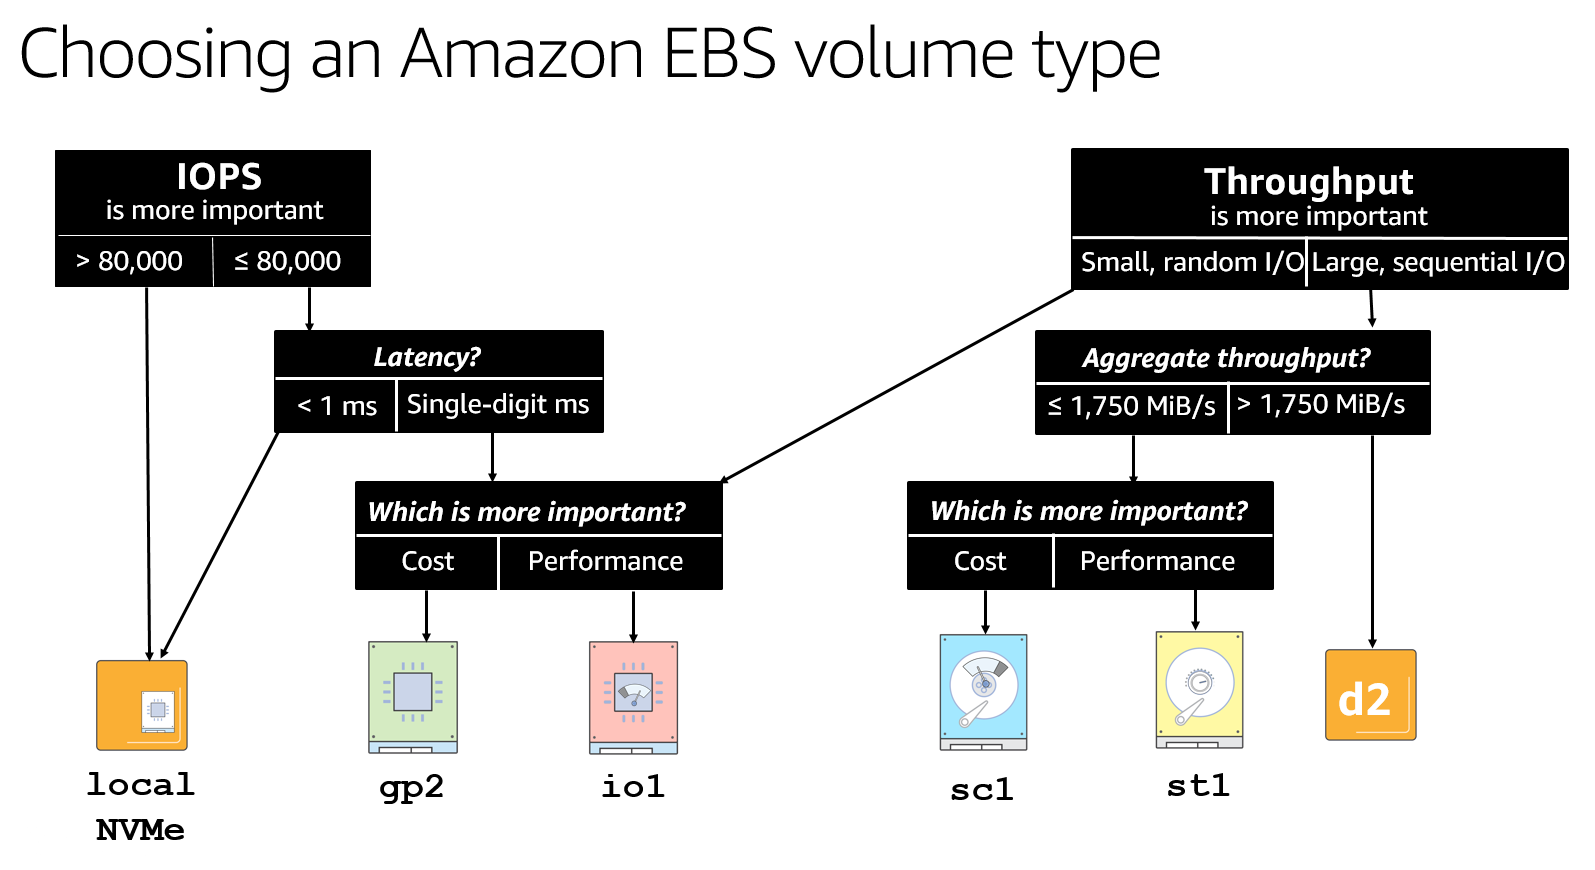 flowchart designed to help choose an Amazon EBS volume type